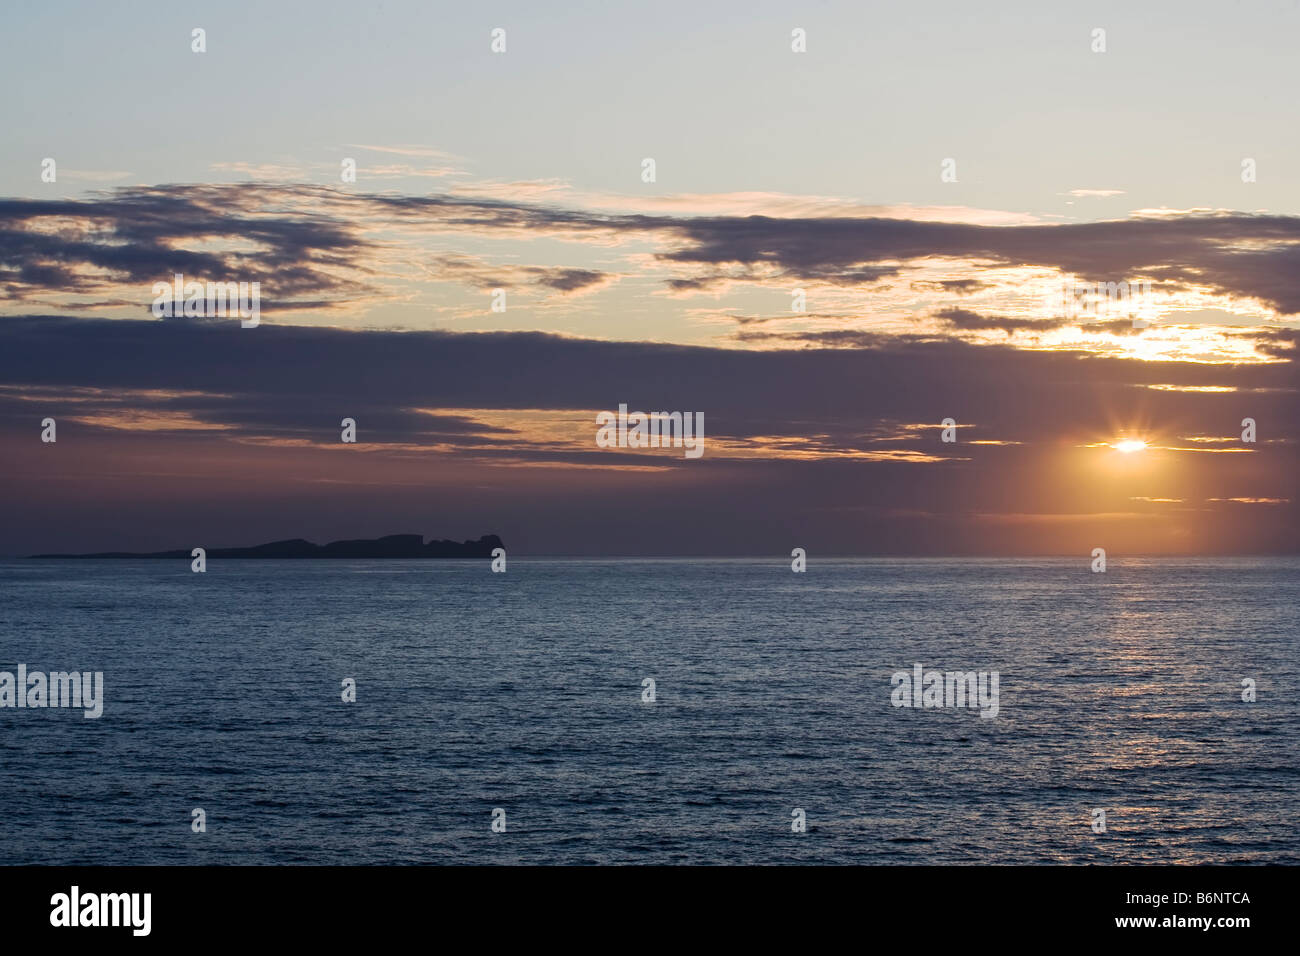 View to Tory Island of the North Coast of Donegal Ireland at Sunset Stock Photo